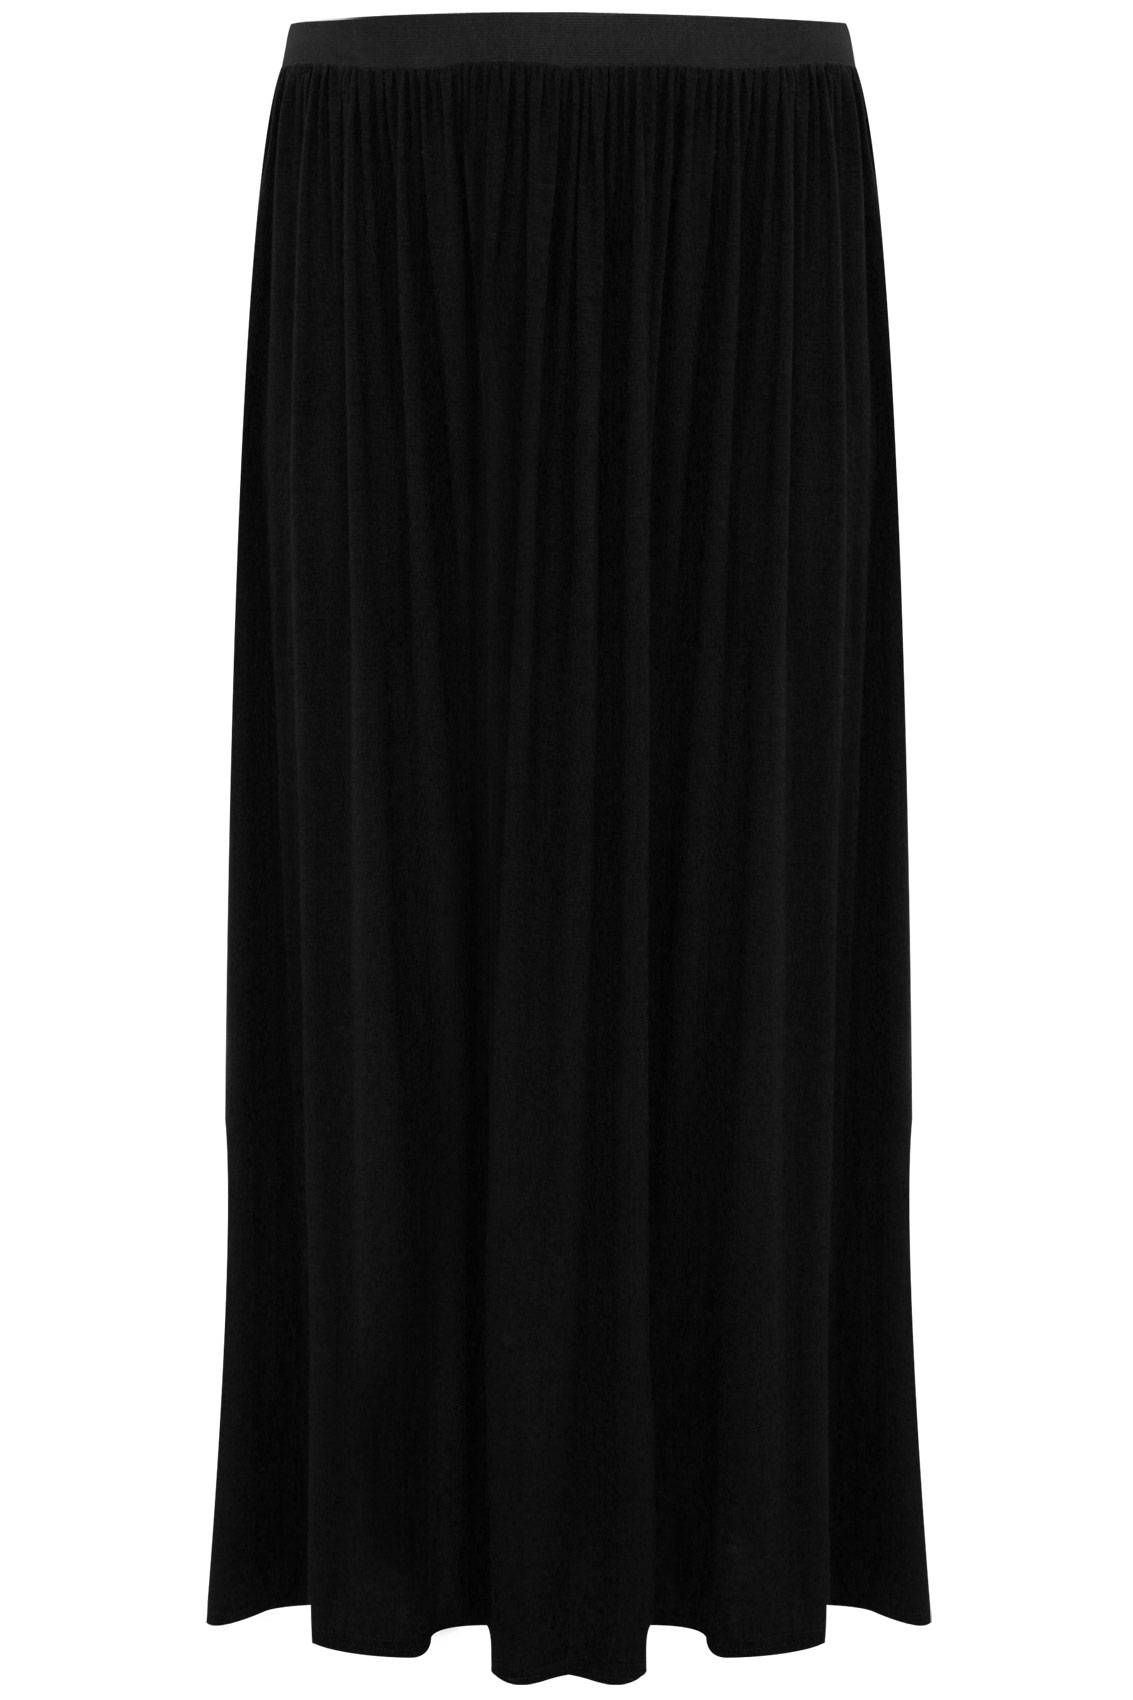 Black Maxi Skirt With Elasticated Waist plus Size 14 to 32